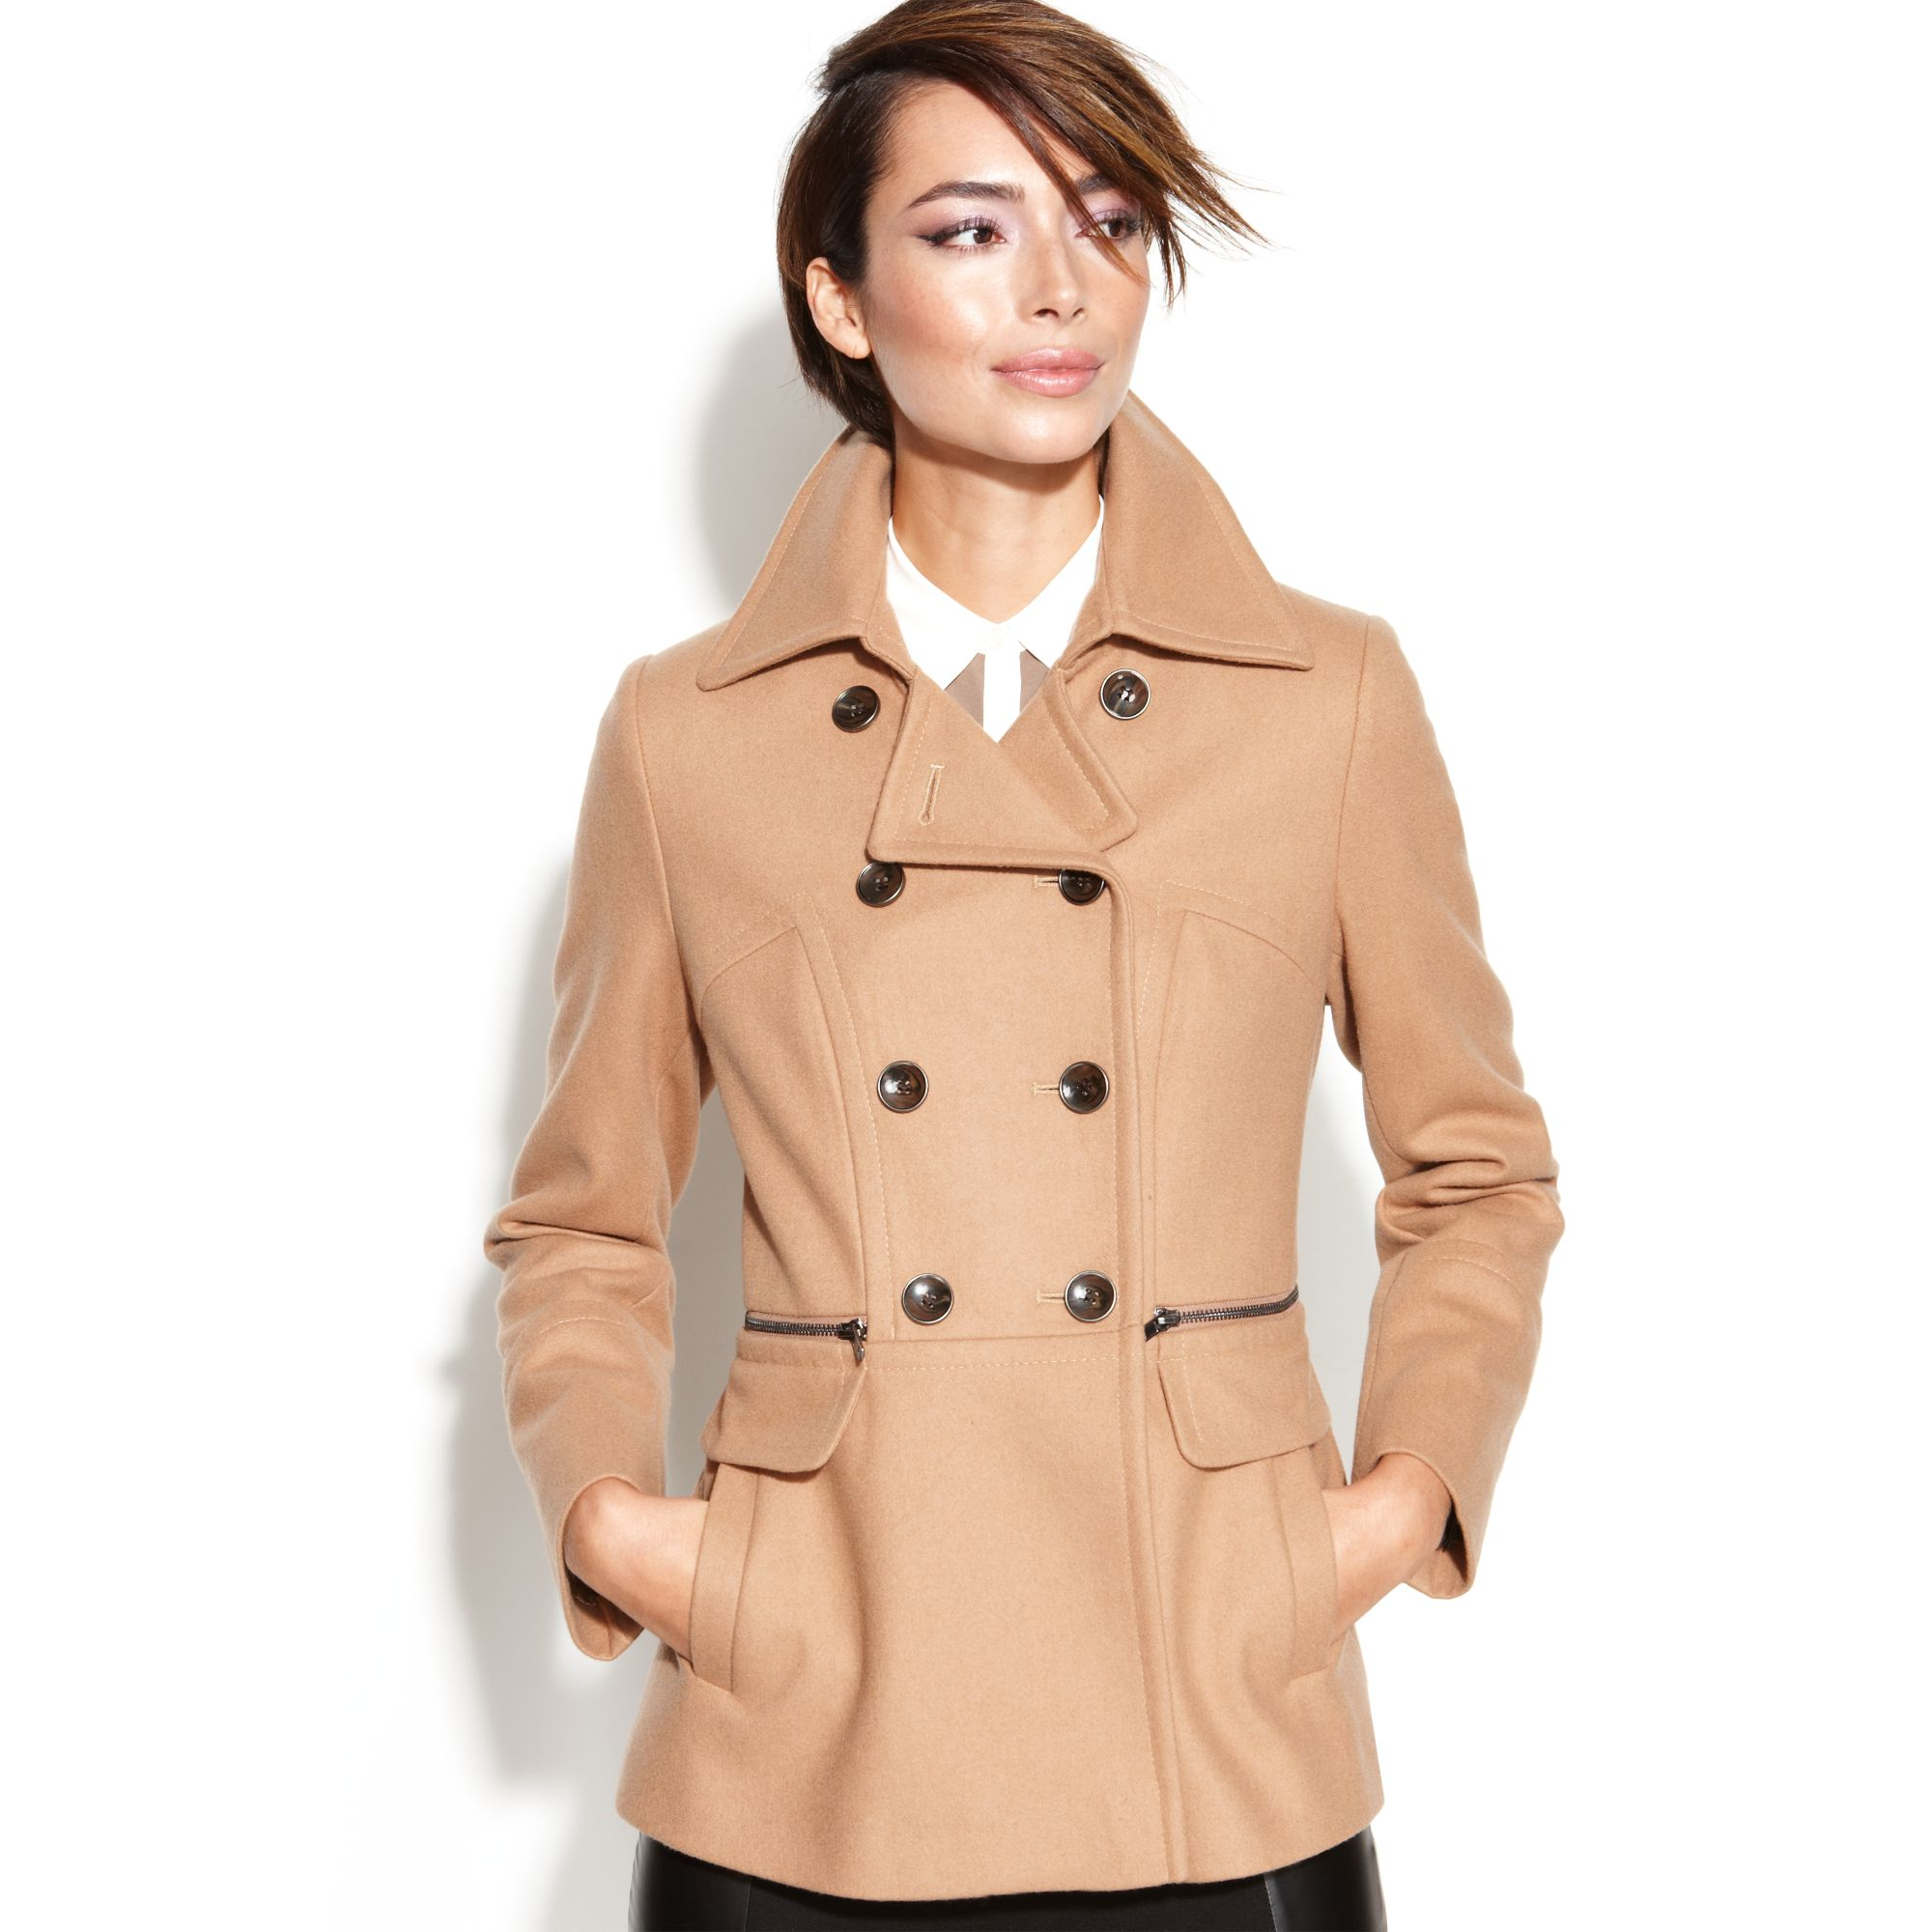 Collection Beige Pea Coat Womens Pictures - Reikian